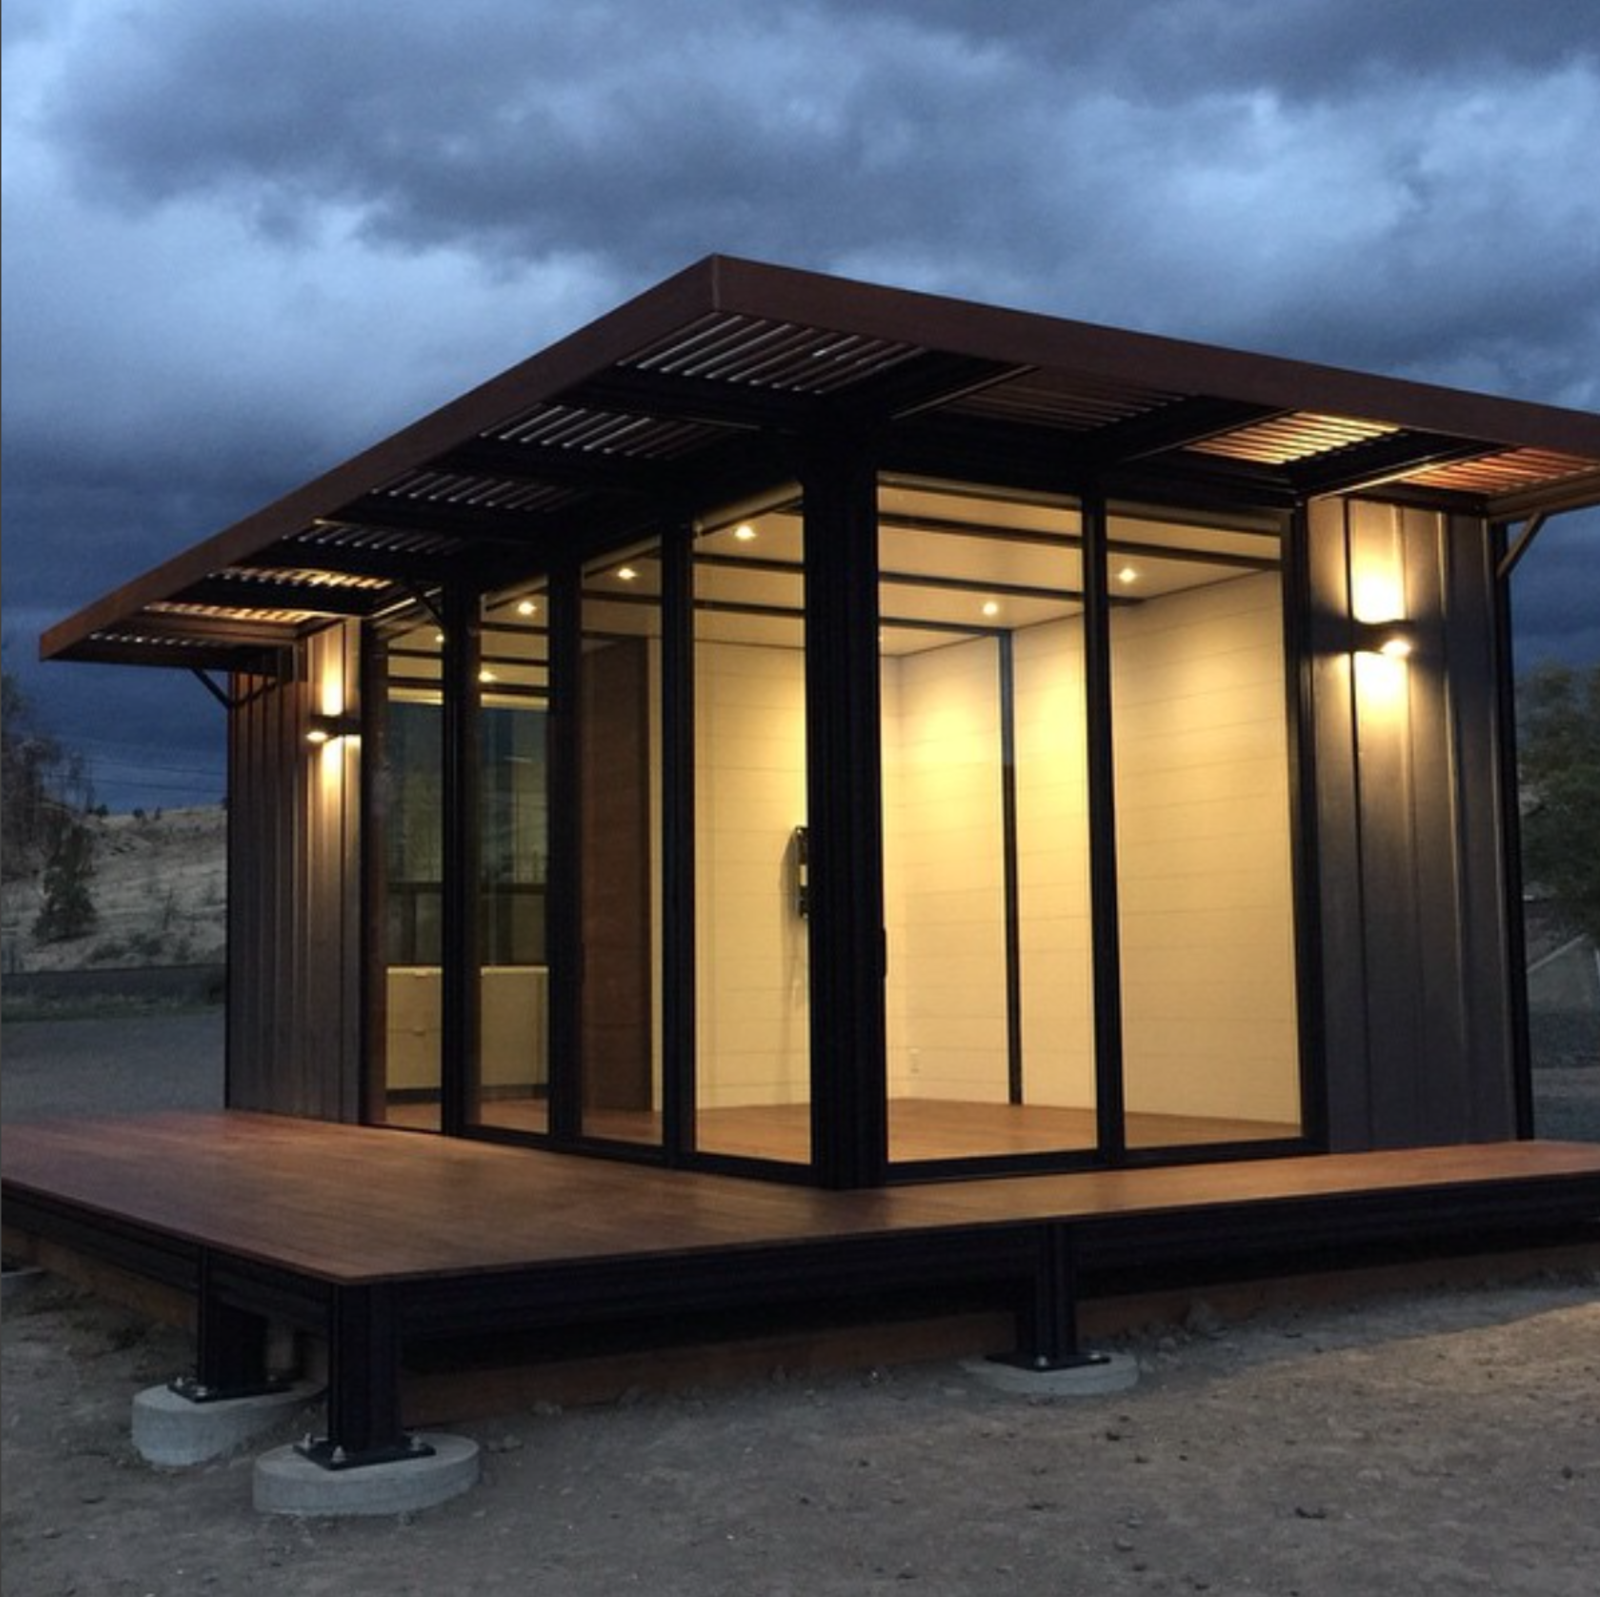 Exterior, Metal Roof Material, Wood Siding Material, Flat RoofLine, Glass Siding Material, and Prefab Building Type Starting from $65,000, the k6 model includes various add-on options, including a full kitchen and bath.  Photo 7 of 22 in Modern Modular Homes for Sale From $10K to $200K from Photo of the Week: Tiny Prefab on the Banks of the Oregon River